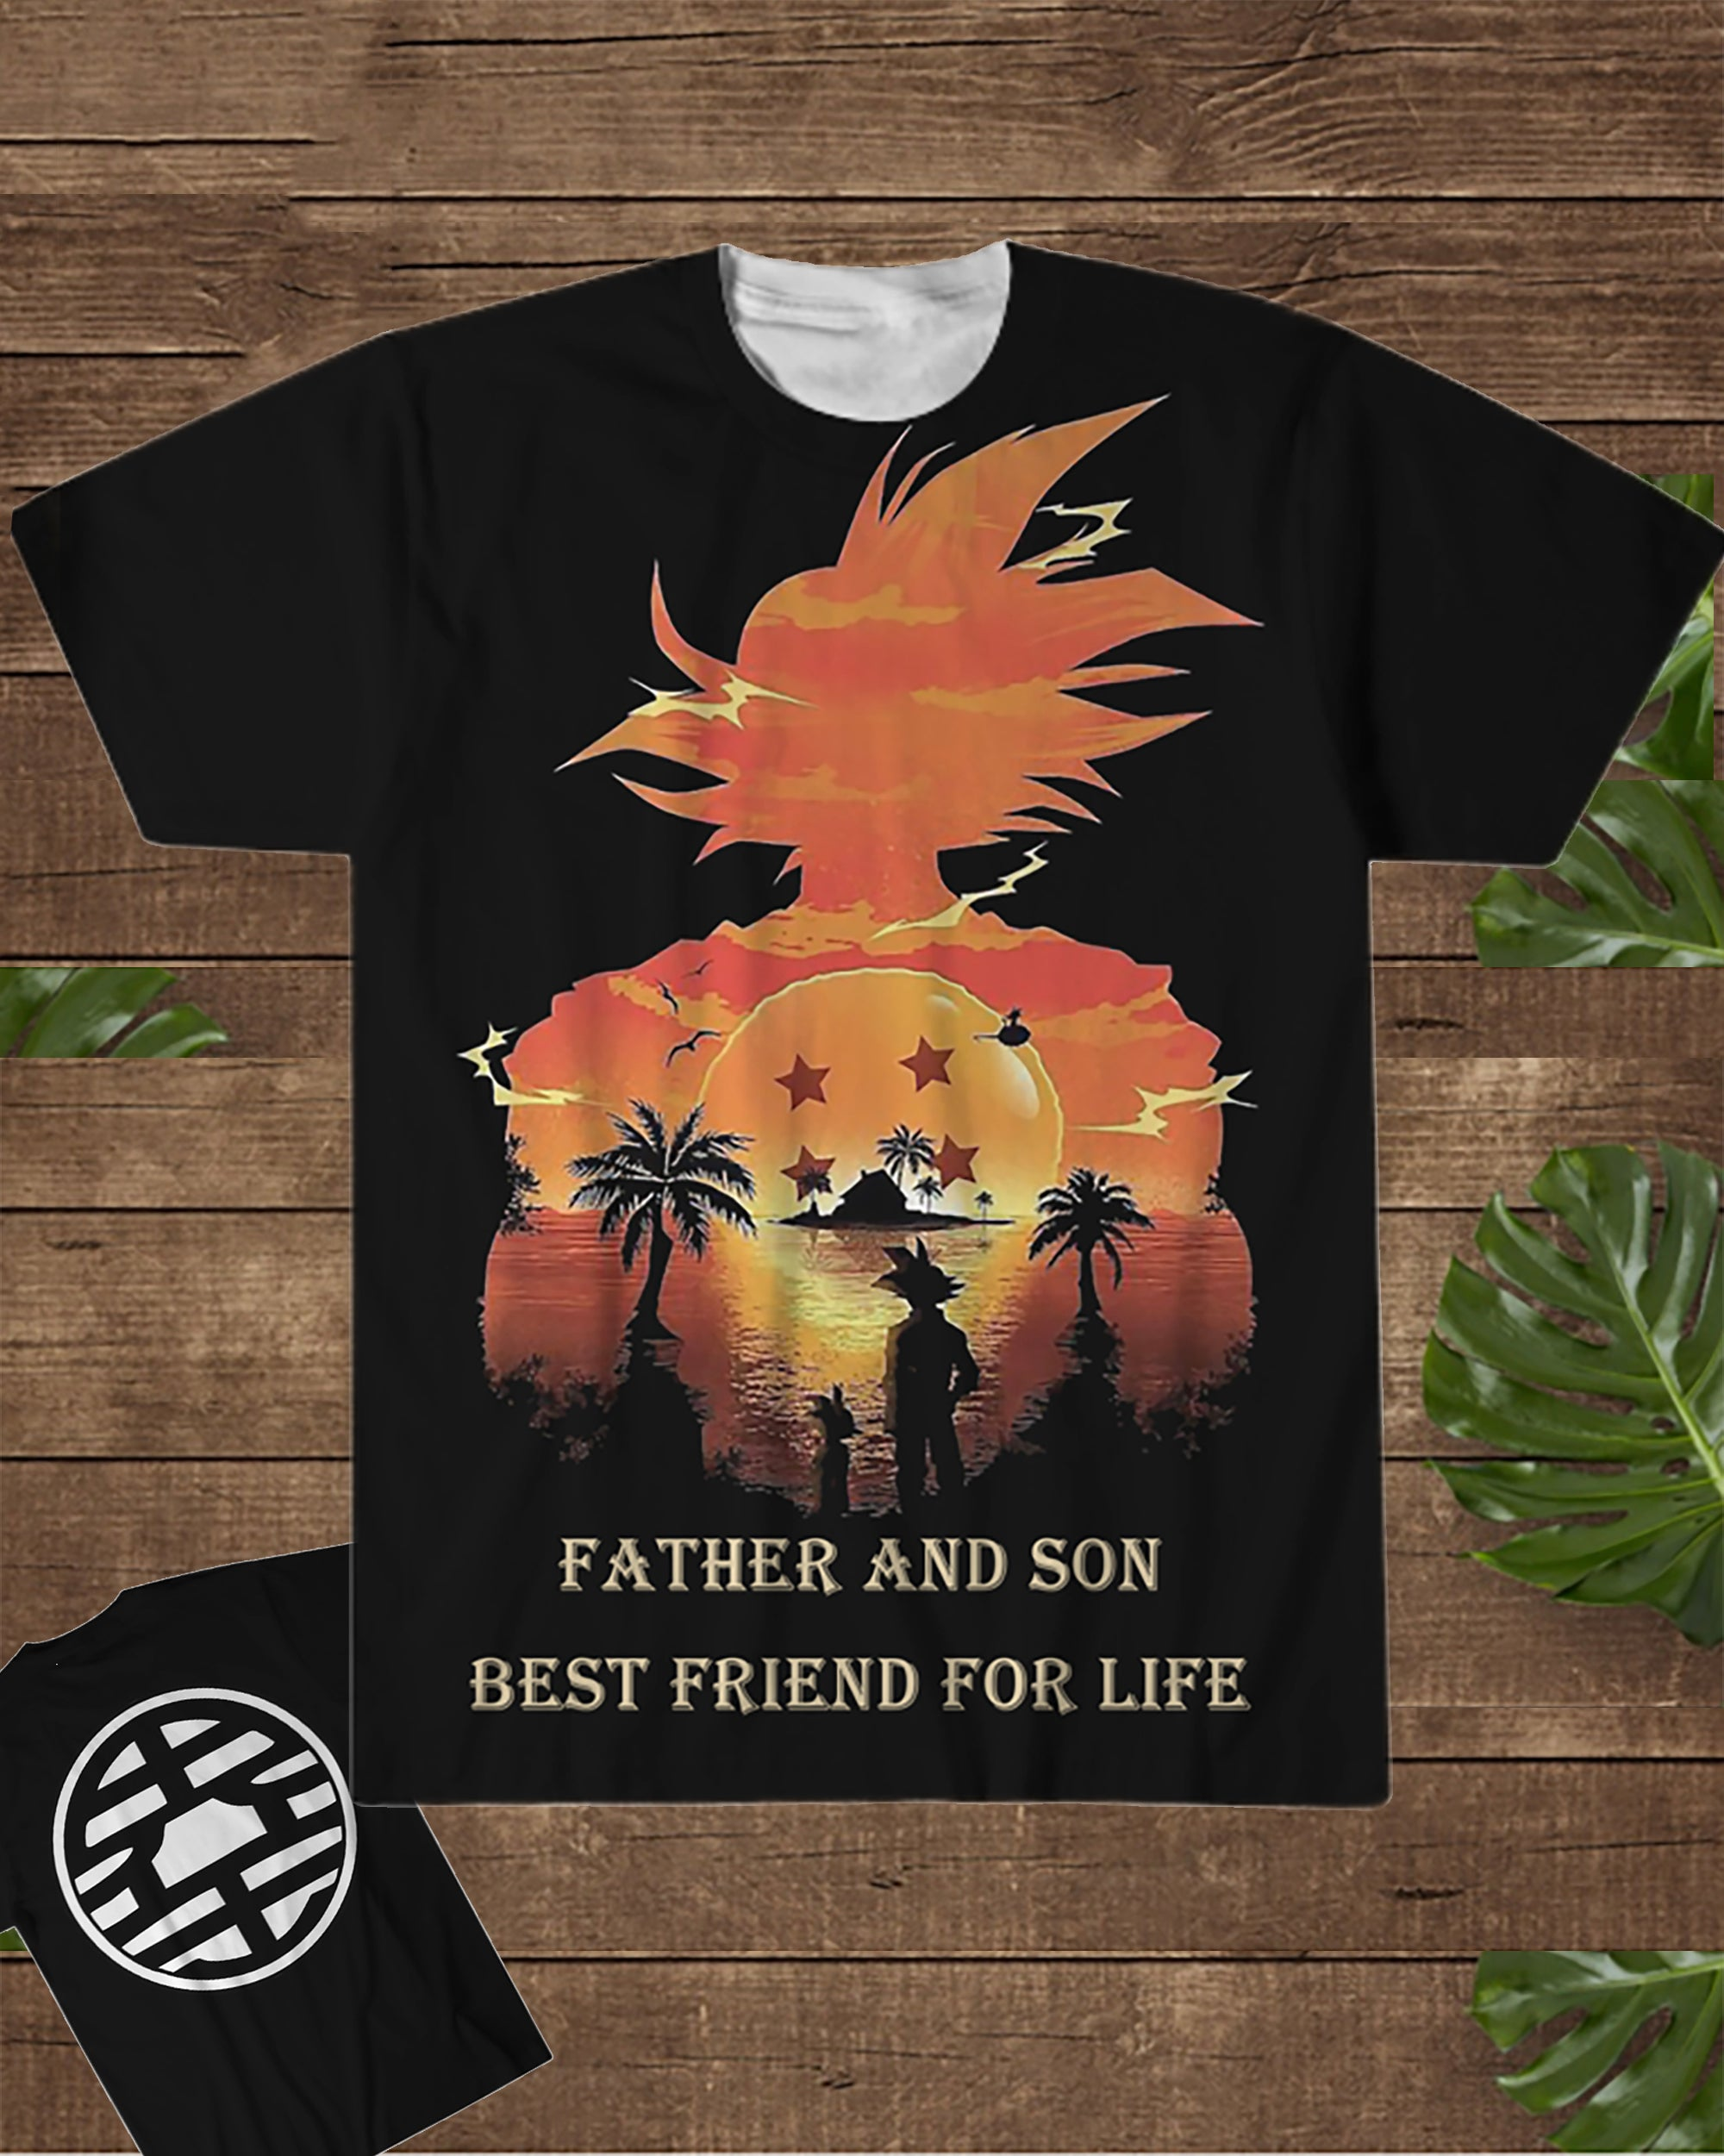 af8b86141 Personalized T Shirts For Father And Son   Kuenzi Turf & Nursery